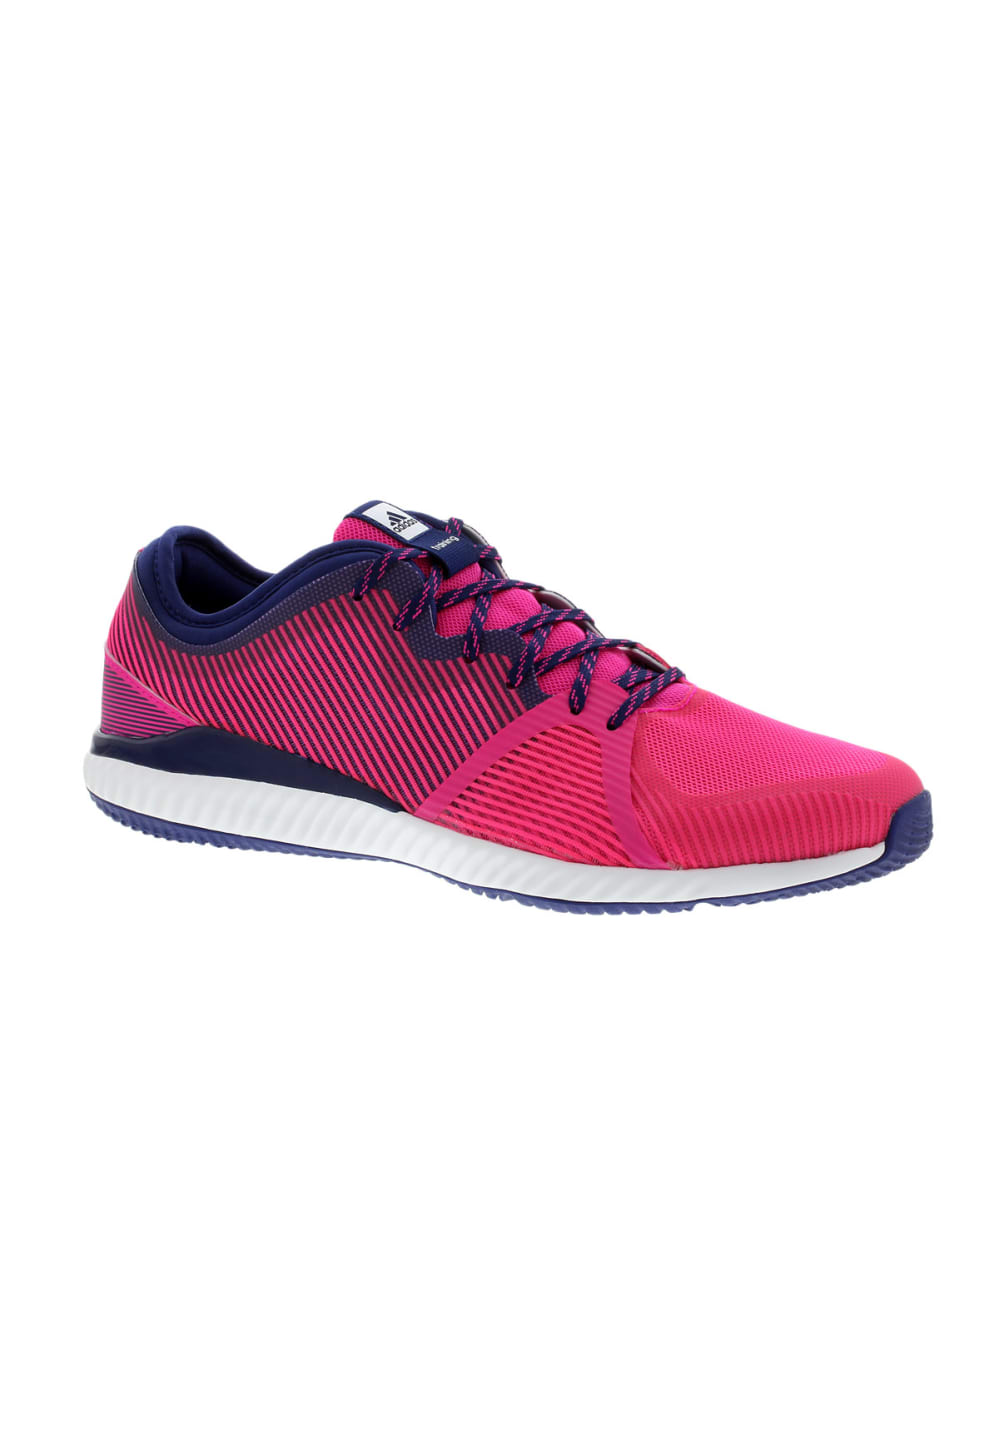 79cac71760a Next. -60%. adidas. Edge Trainer Bounce - Fitness shoes for Women